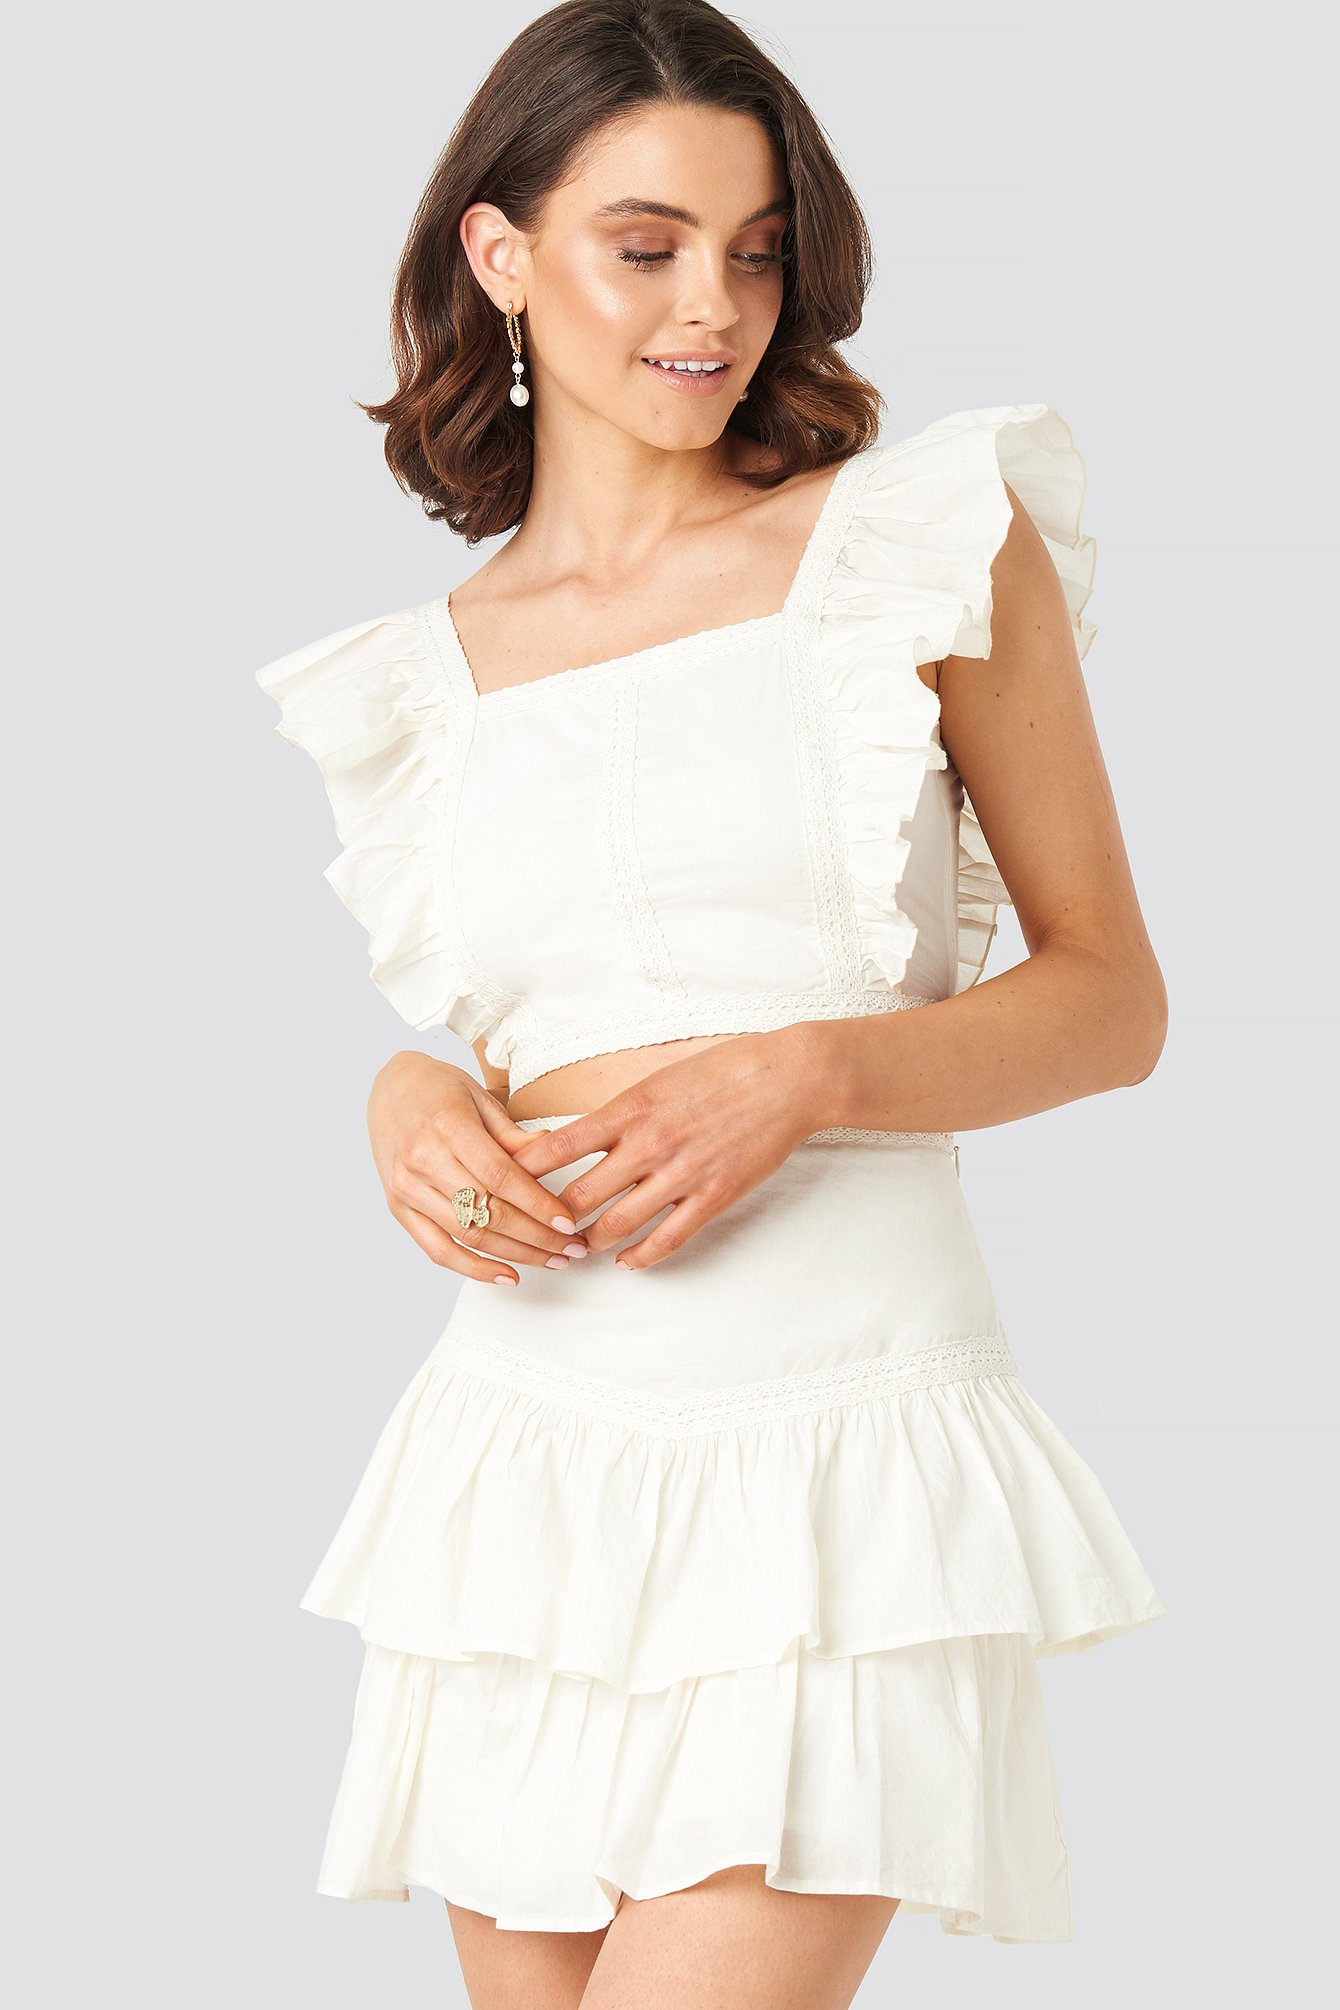 Queen Of Jetlags X Na-kd Lace Detailed Frill Mini Skirt - White In Off White